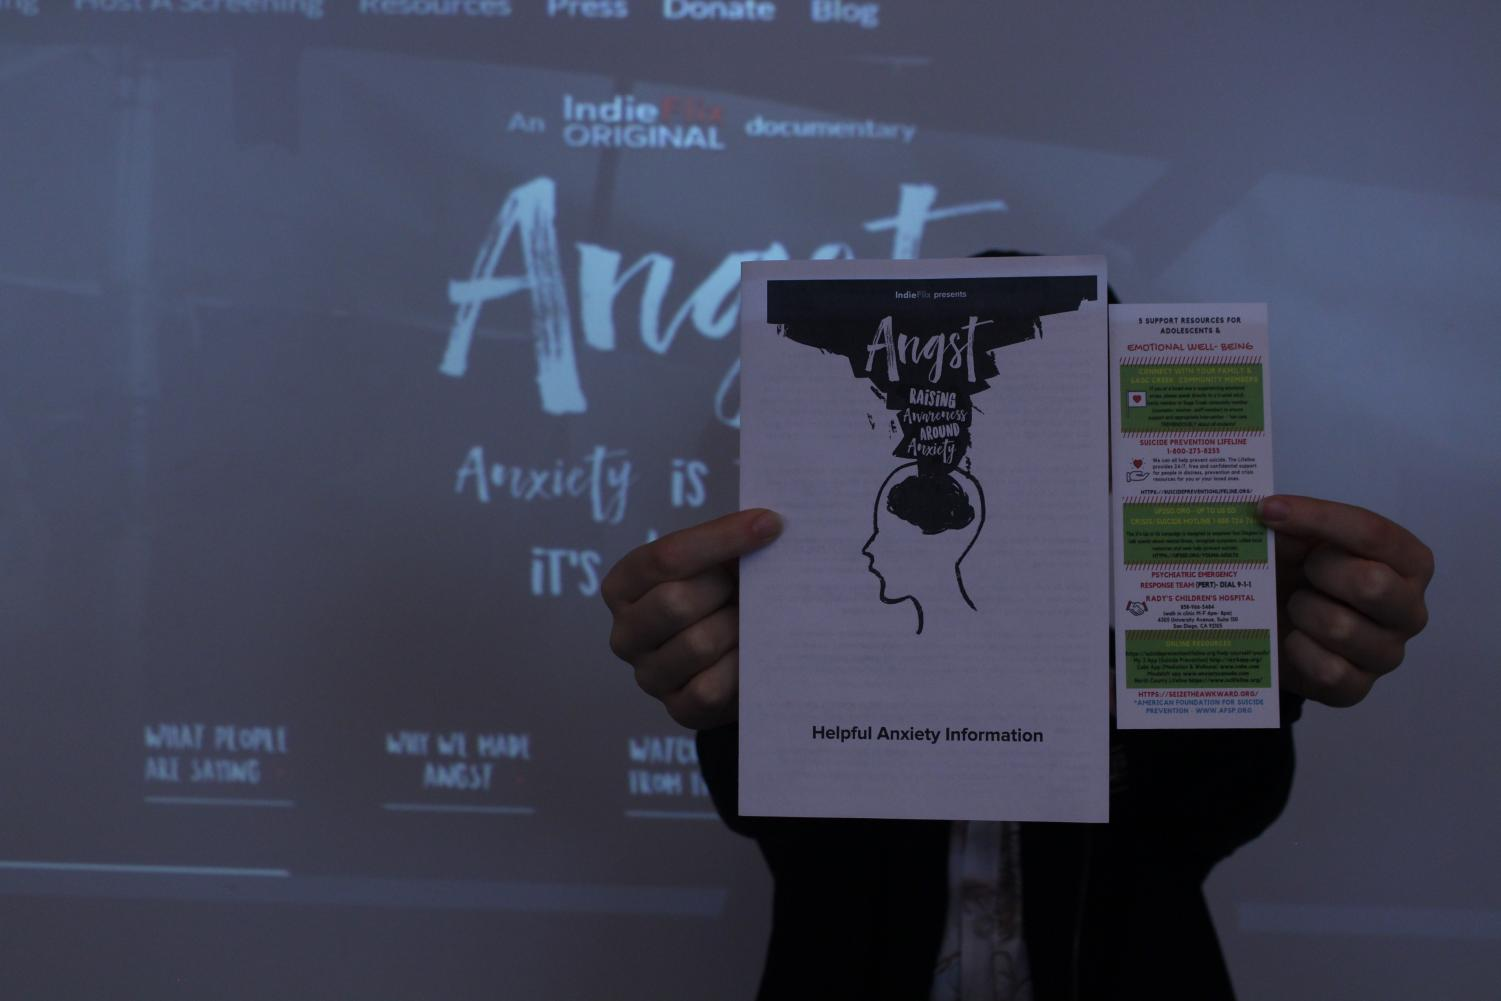 """""""Angst"""" is a documentary covering anxiety in high school students and was broadcasted in every advisory class this past Wednesday. With the film being shown, students were given complimentary pamphlets covering the main topics that were discussed throughout the video."""